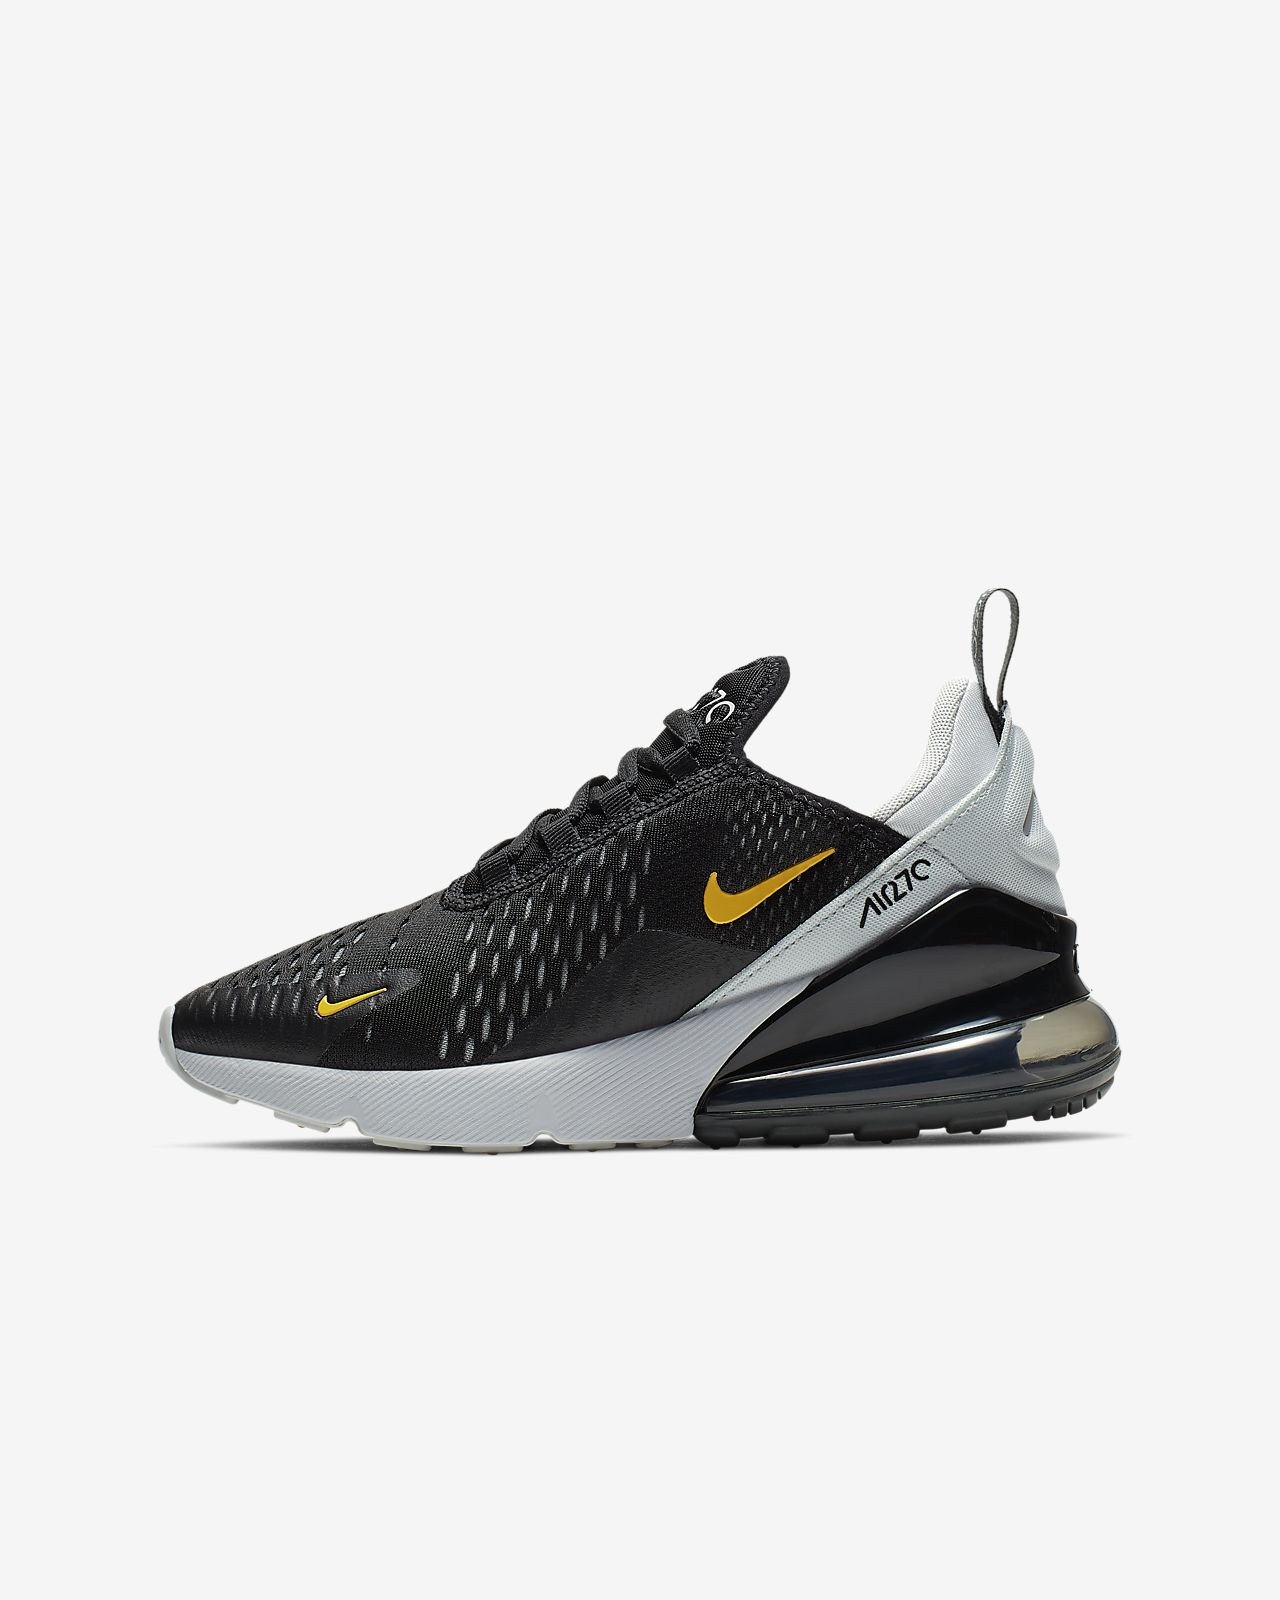 Nike Air Max 96 , nike outlet online store,nike outlet